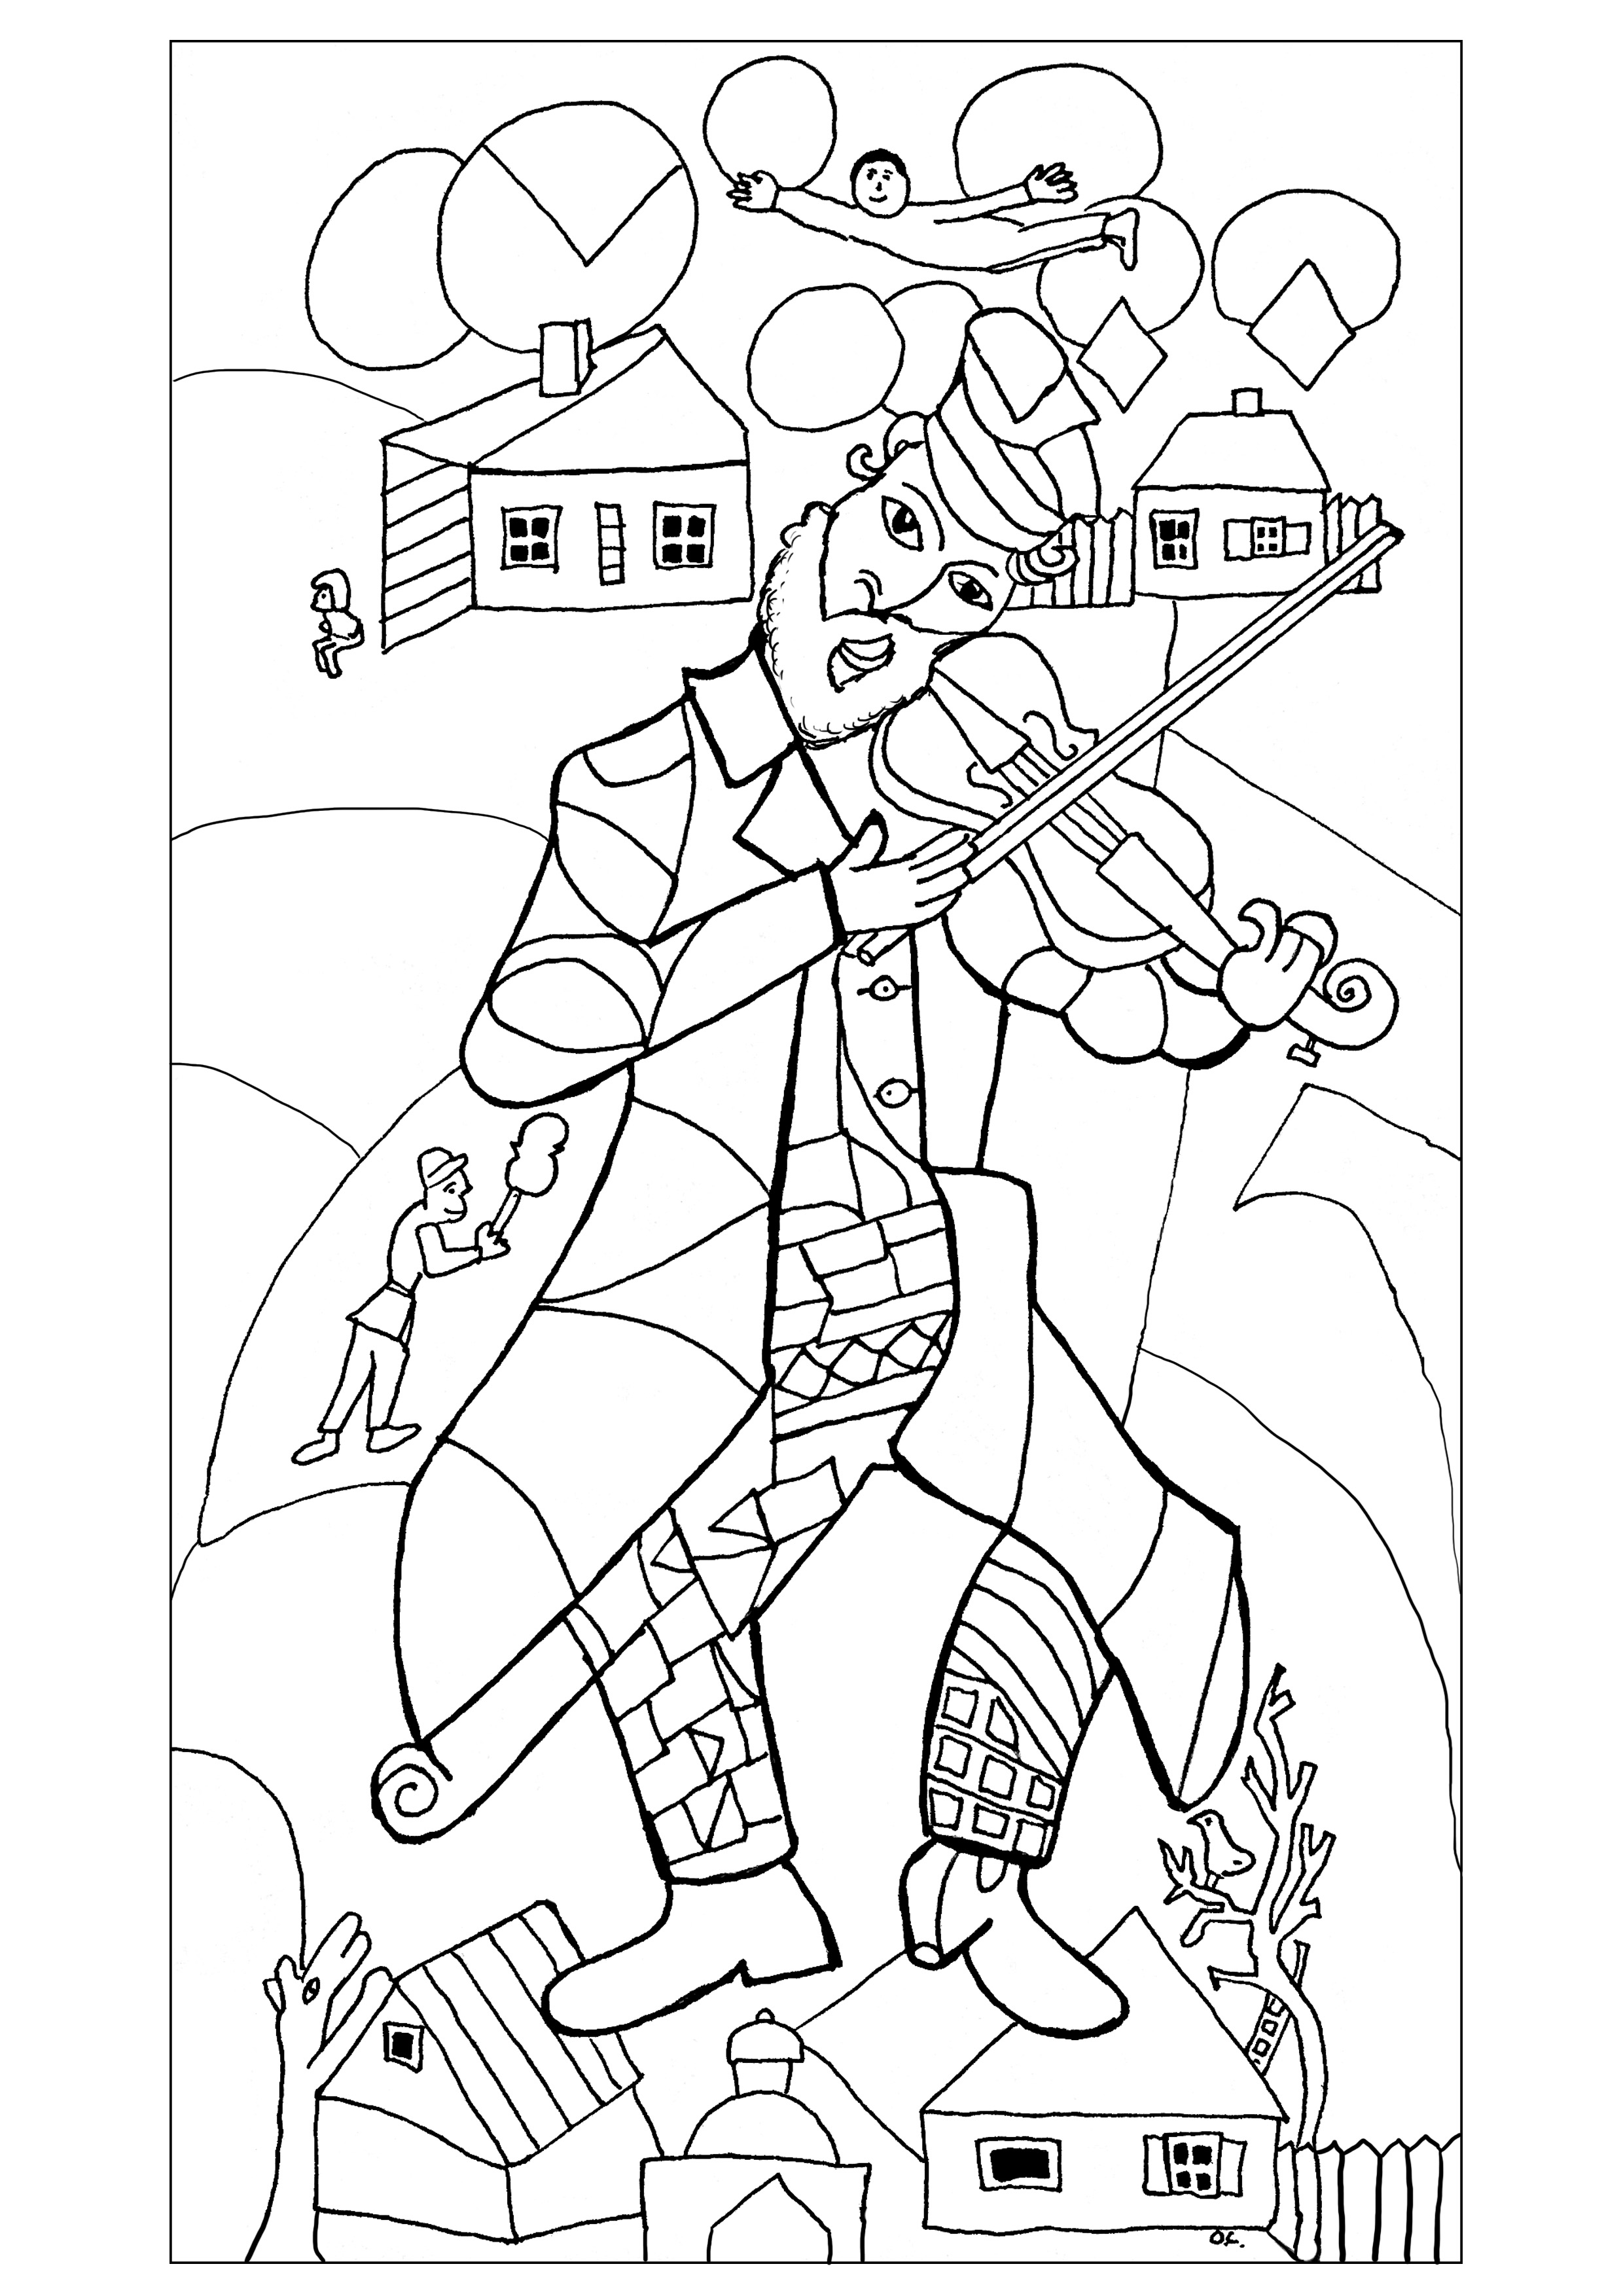 masterpiece coloring pages god39s masterpiece black white print by quietboystudio on masterpiece coloring pages